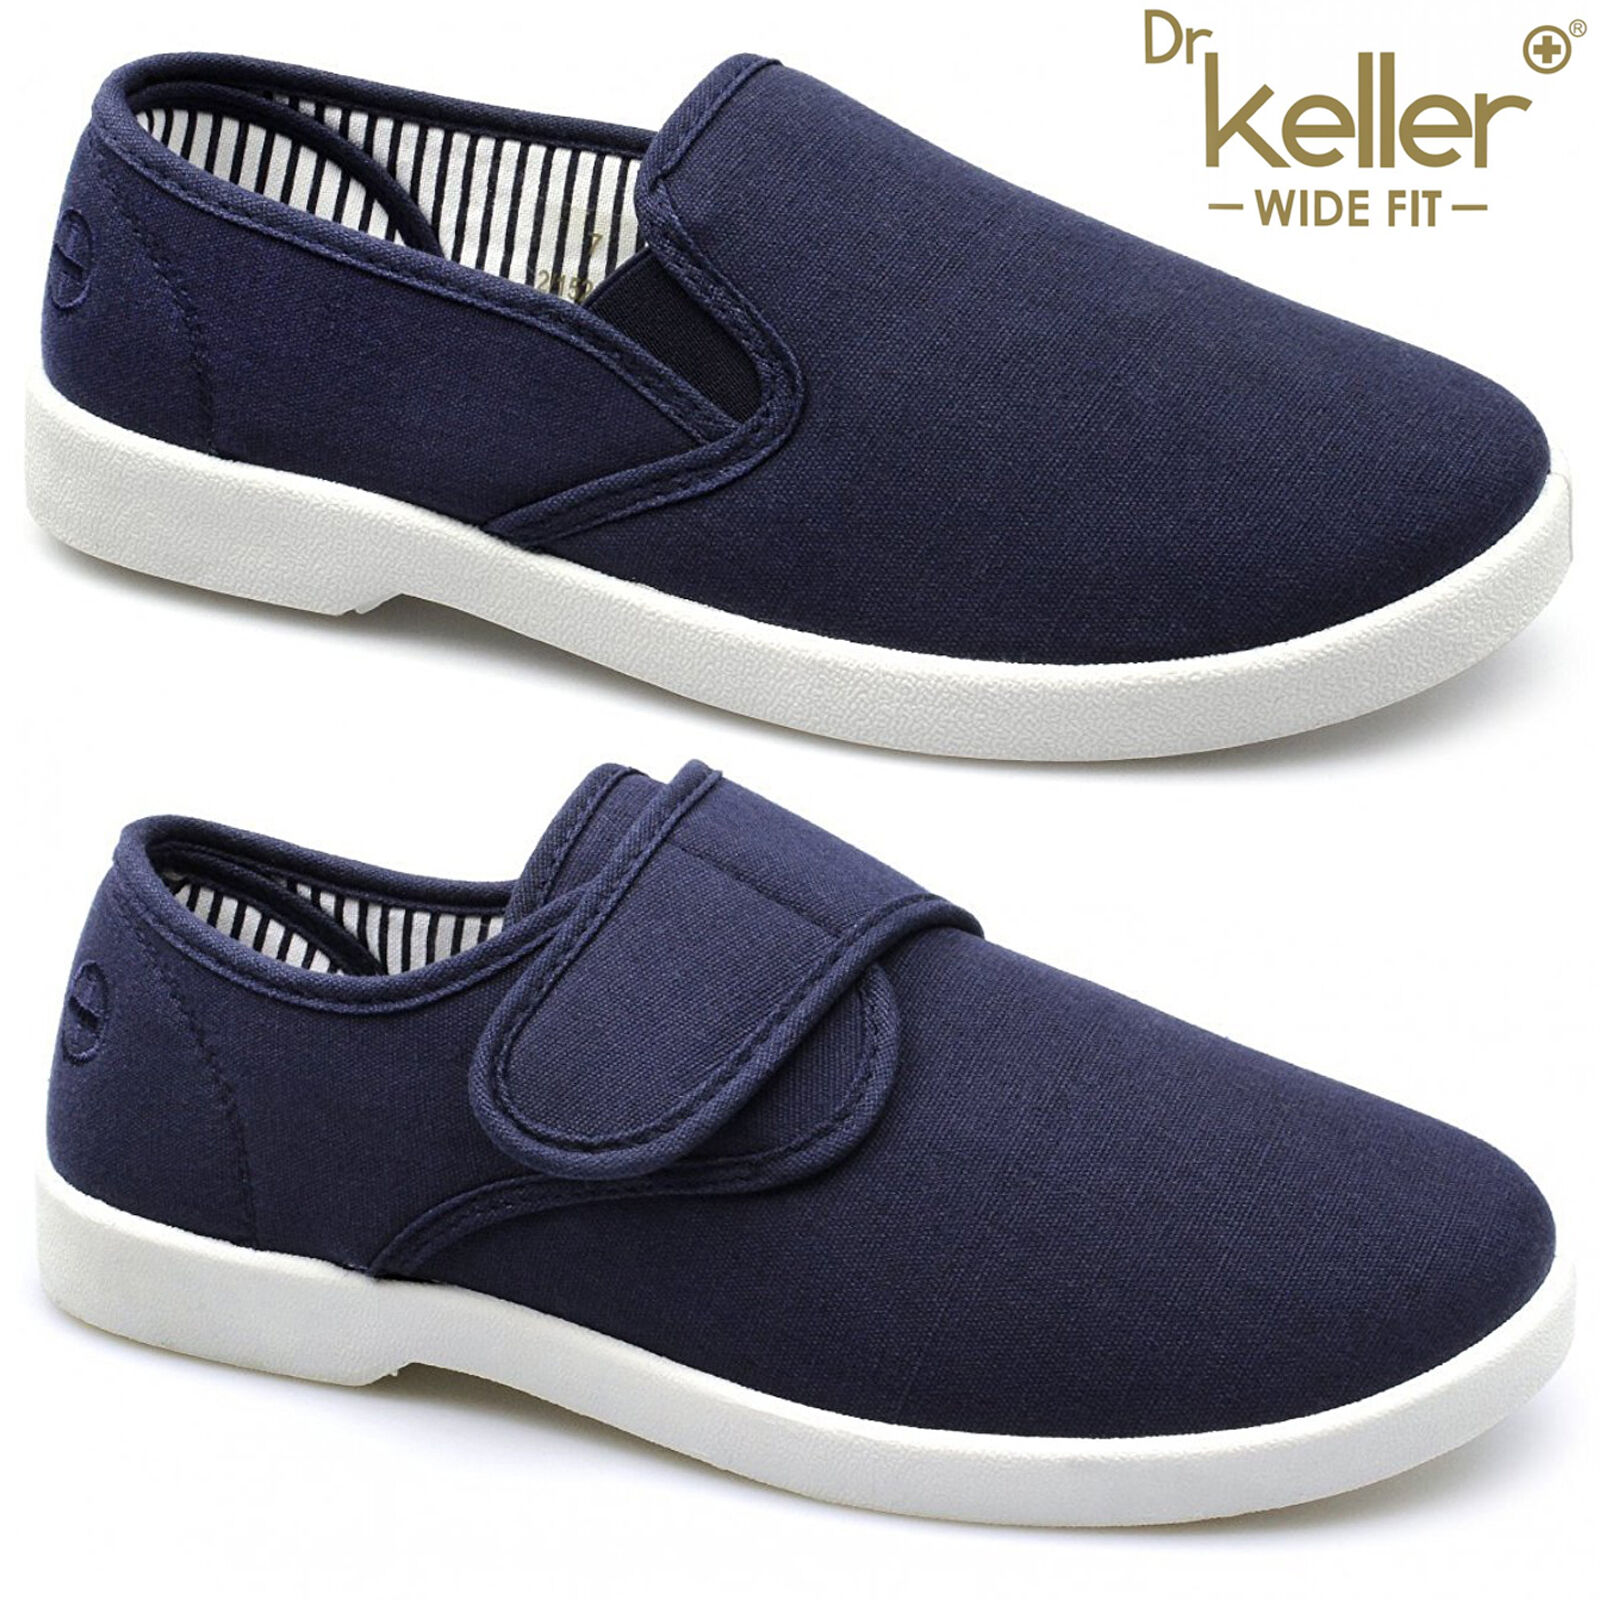 new dr keller mens canvas shoes wide fit deck pumps padded